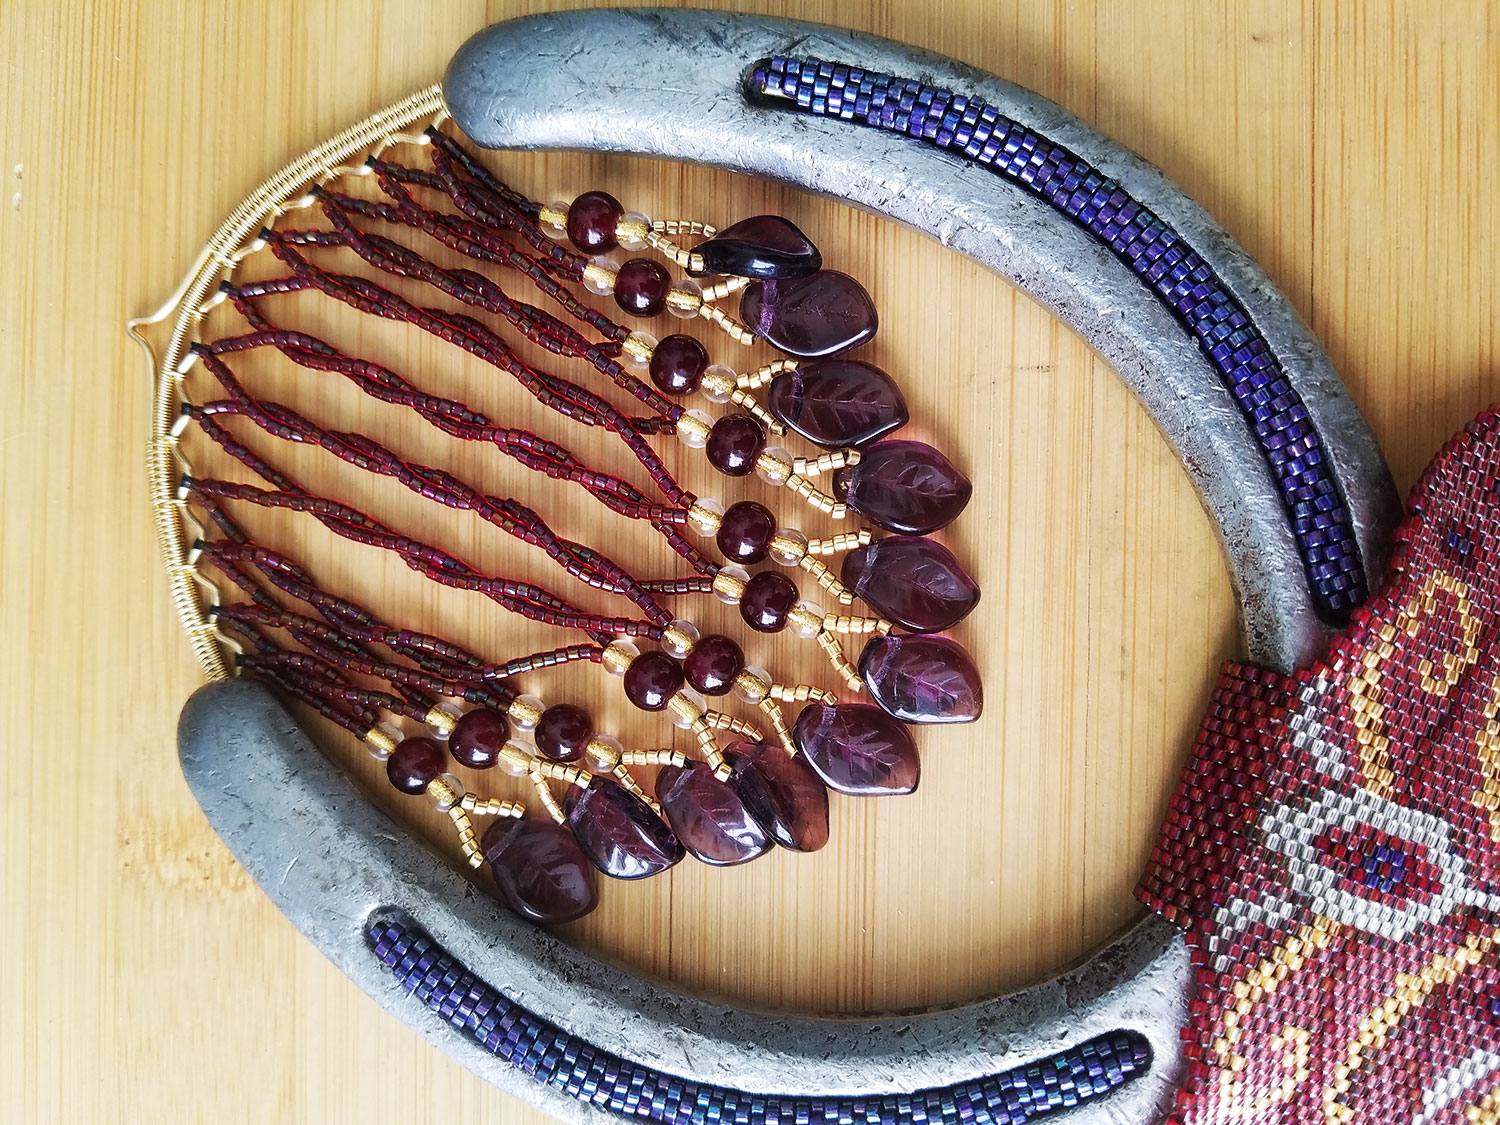 Detail of the wire woven horseshoe hanger with beaded fringe